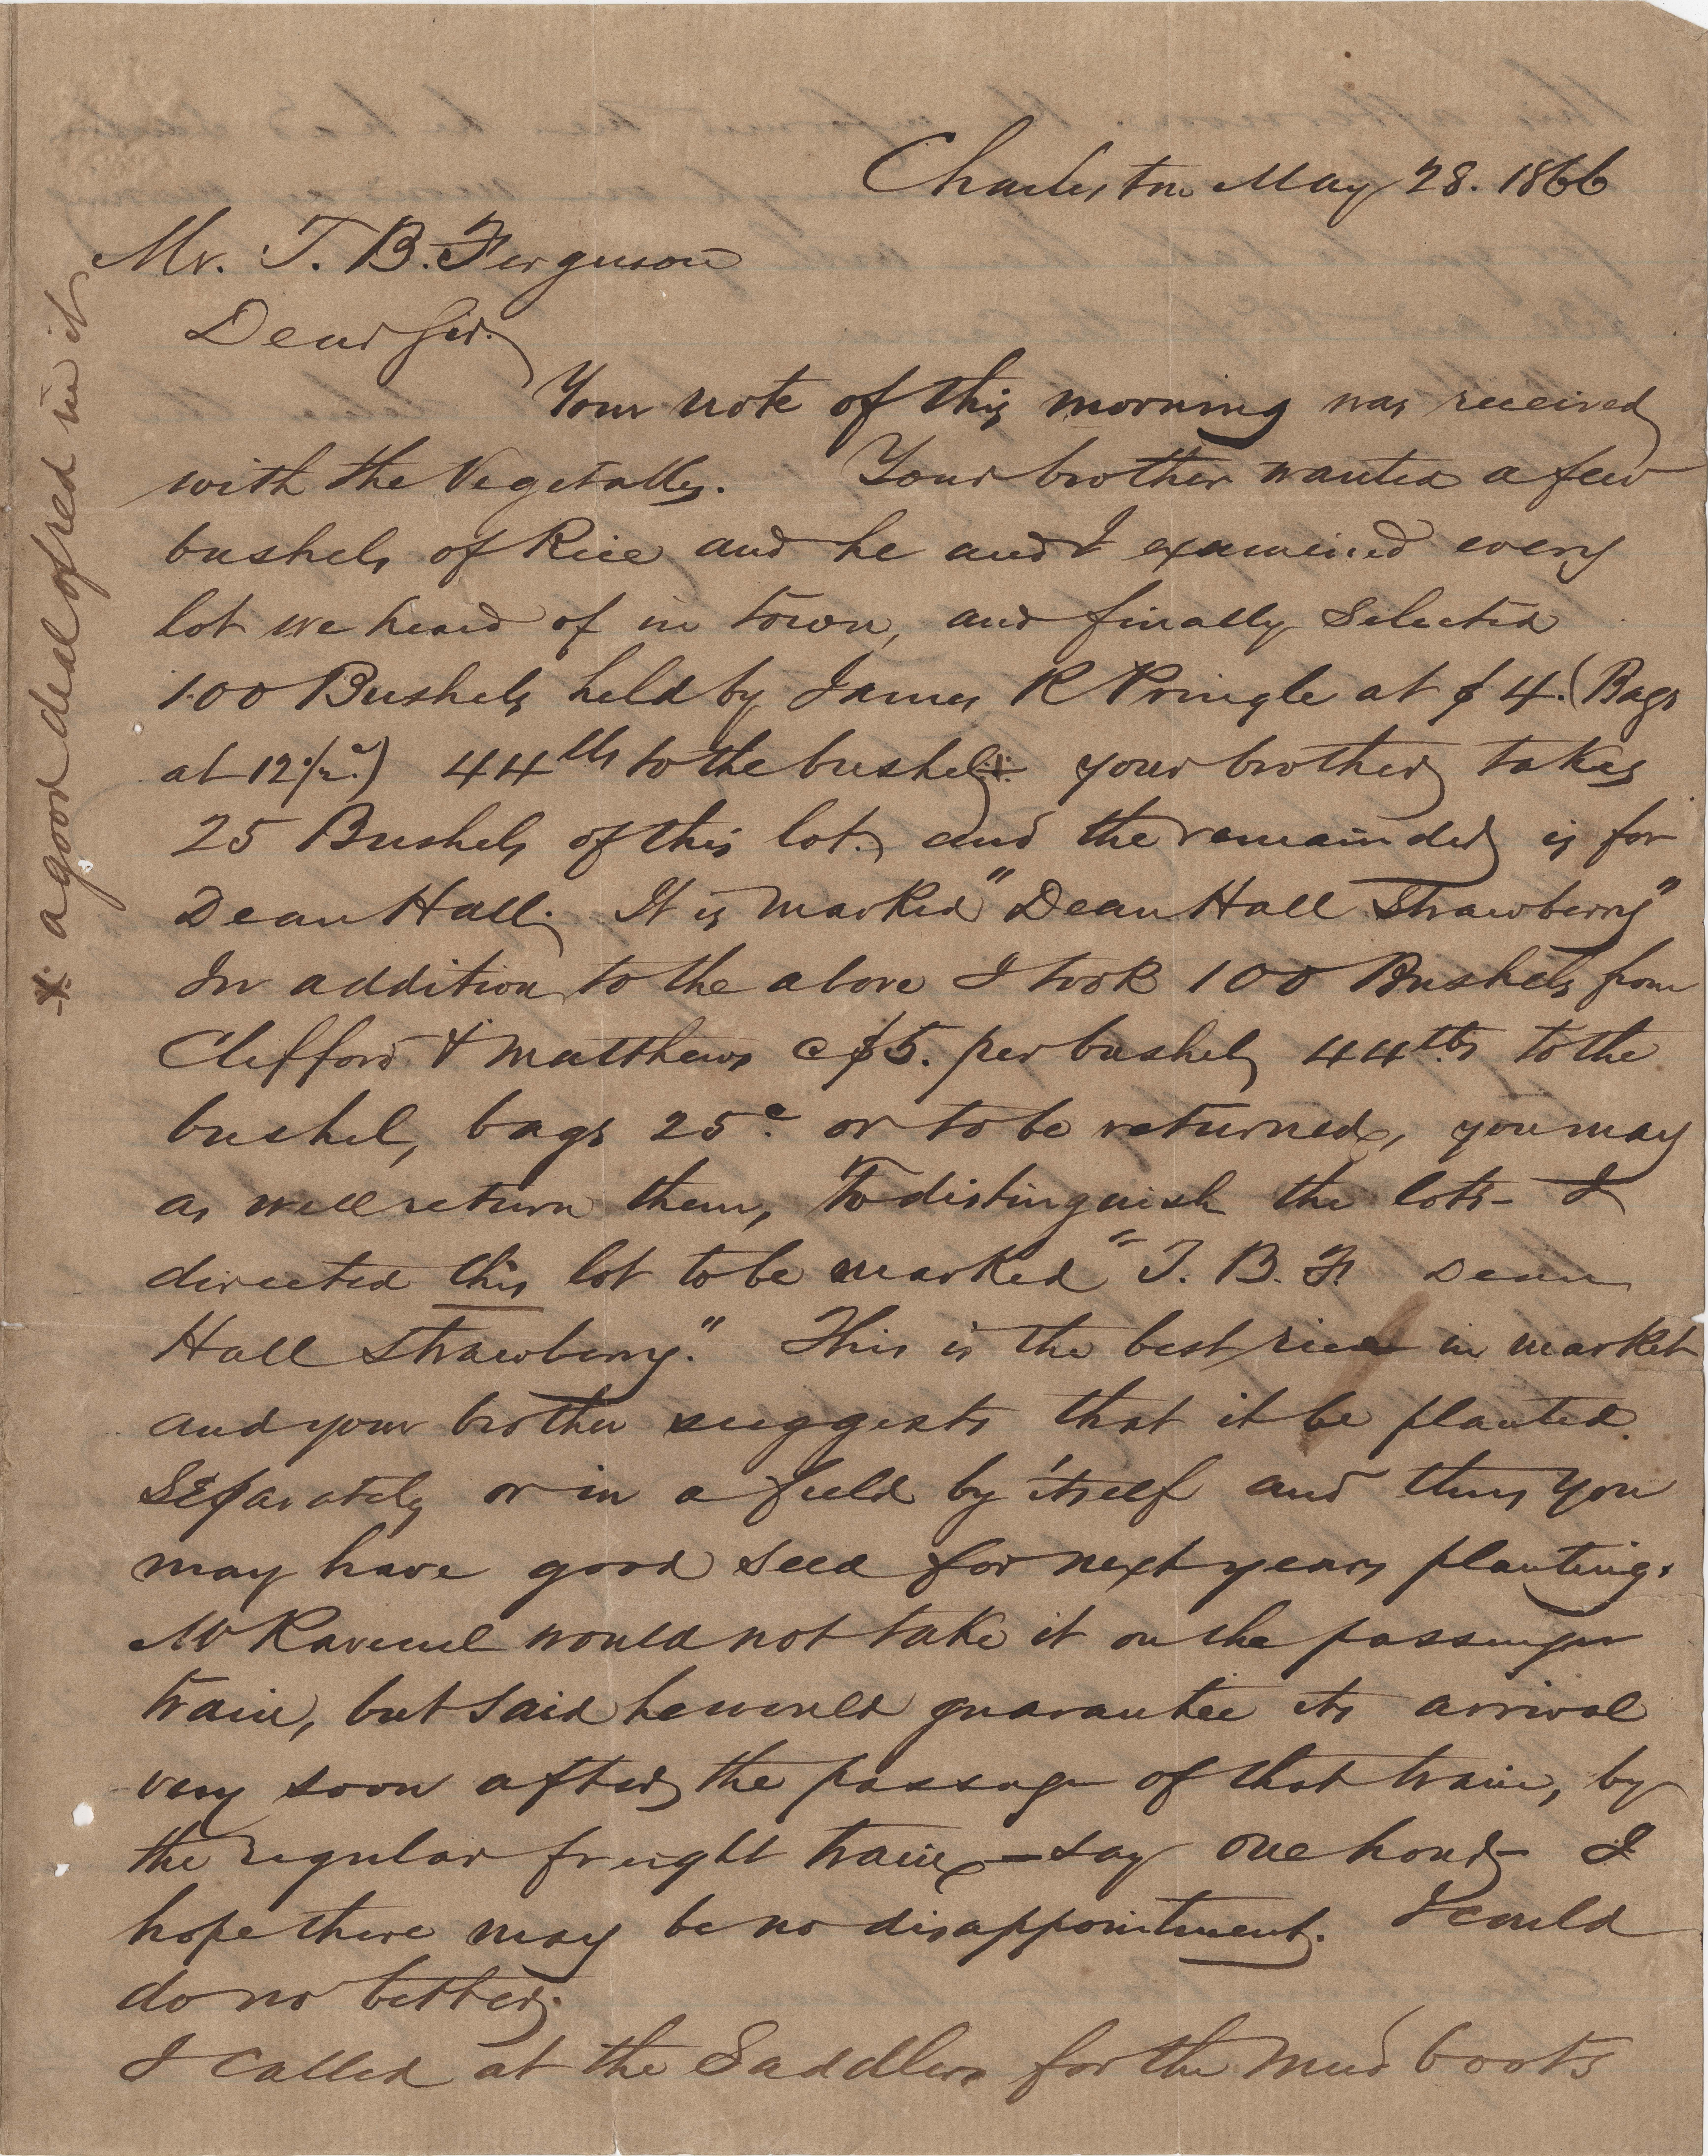 295. William McBurney to Thomas B. Ferguson -- May 28, 1866